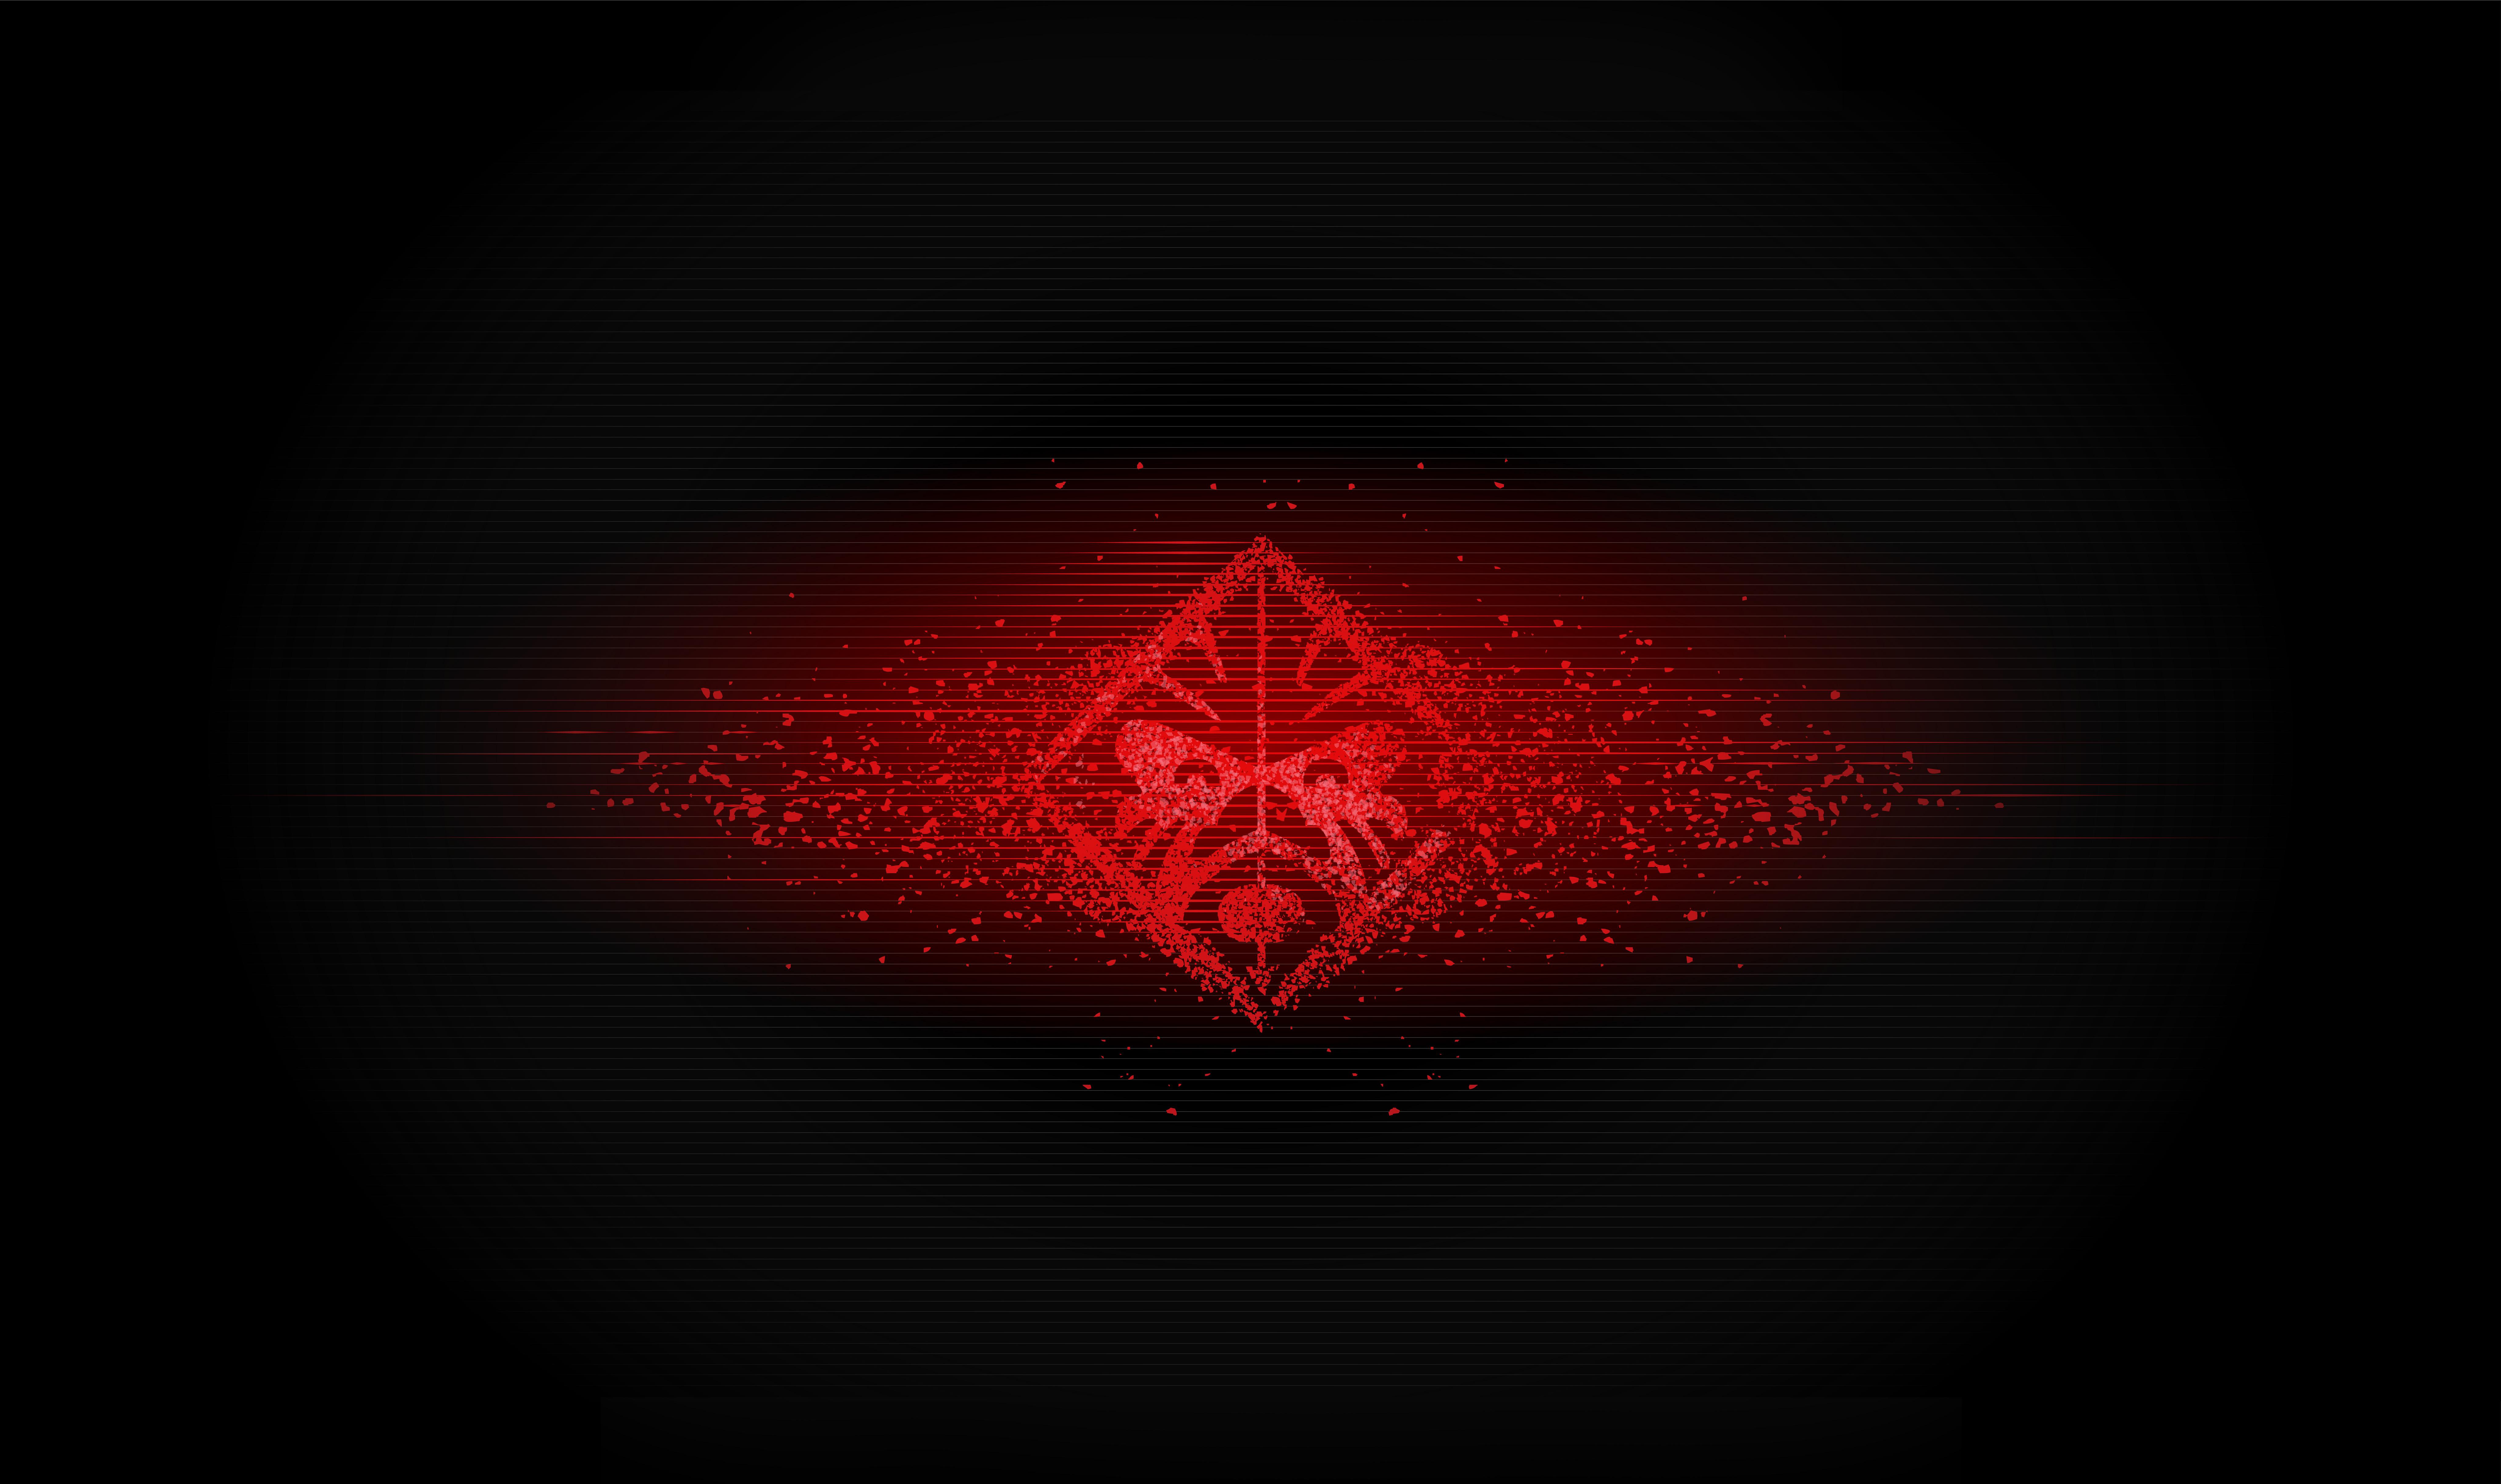 7680x4320 Hp Omen 8k 8k Hd 4k Wallpapers Images Backgrounds Photos And Pictures